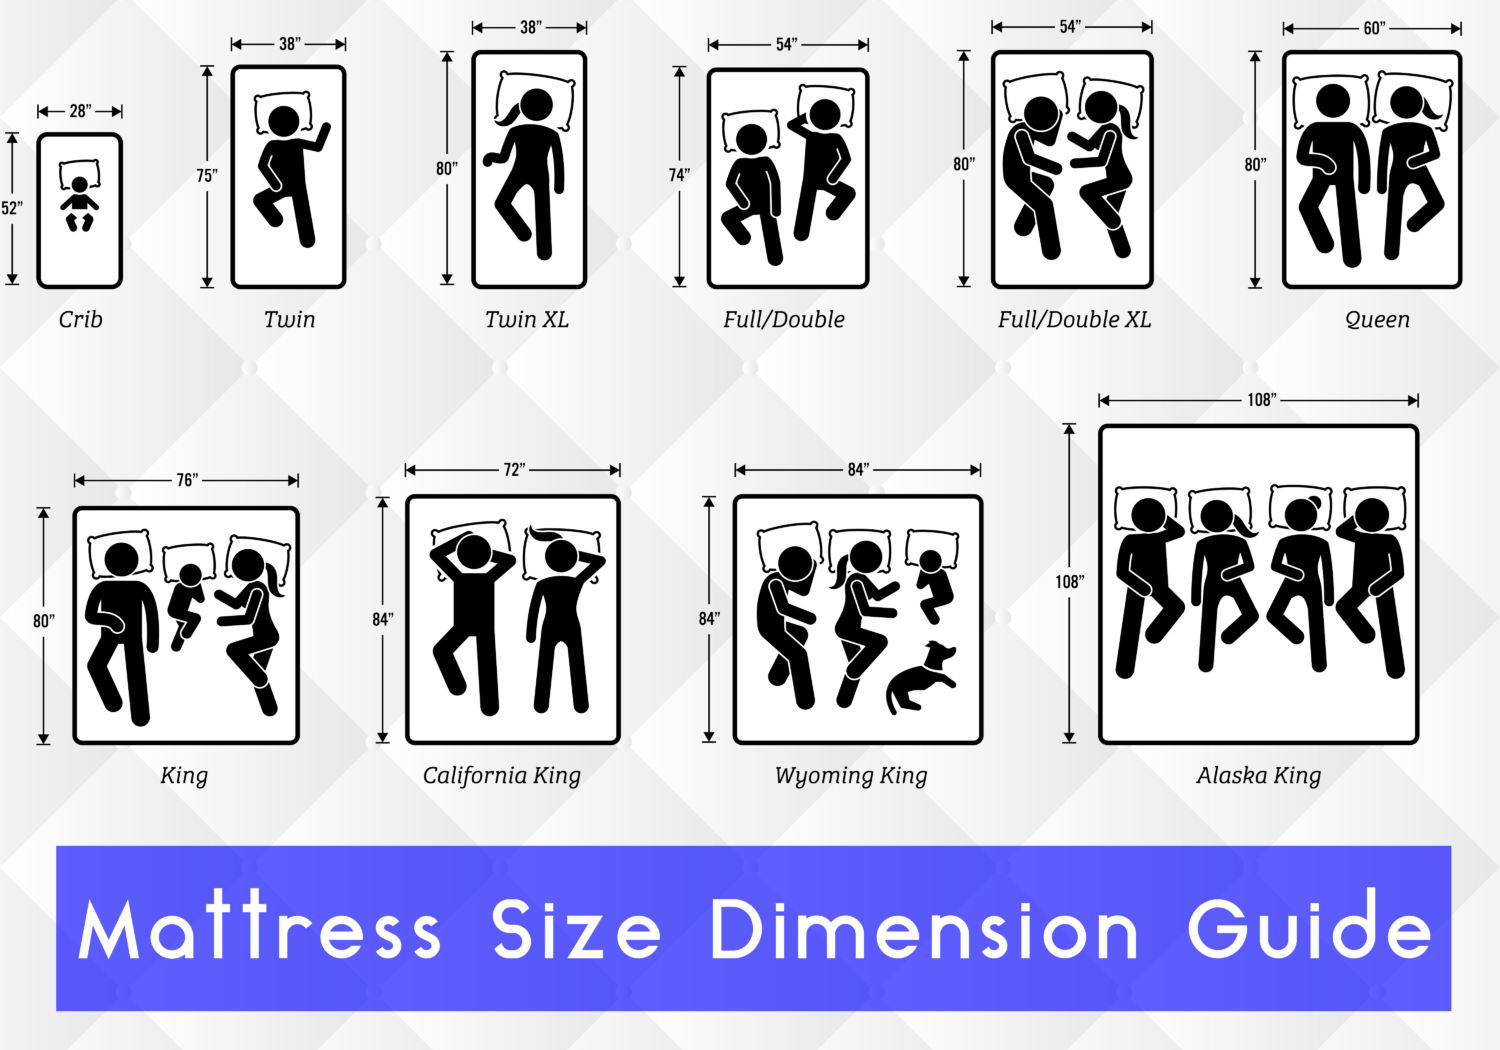 Mattress Size Chart And Mattress Dimesions Mattress Size